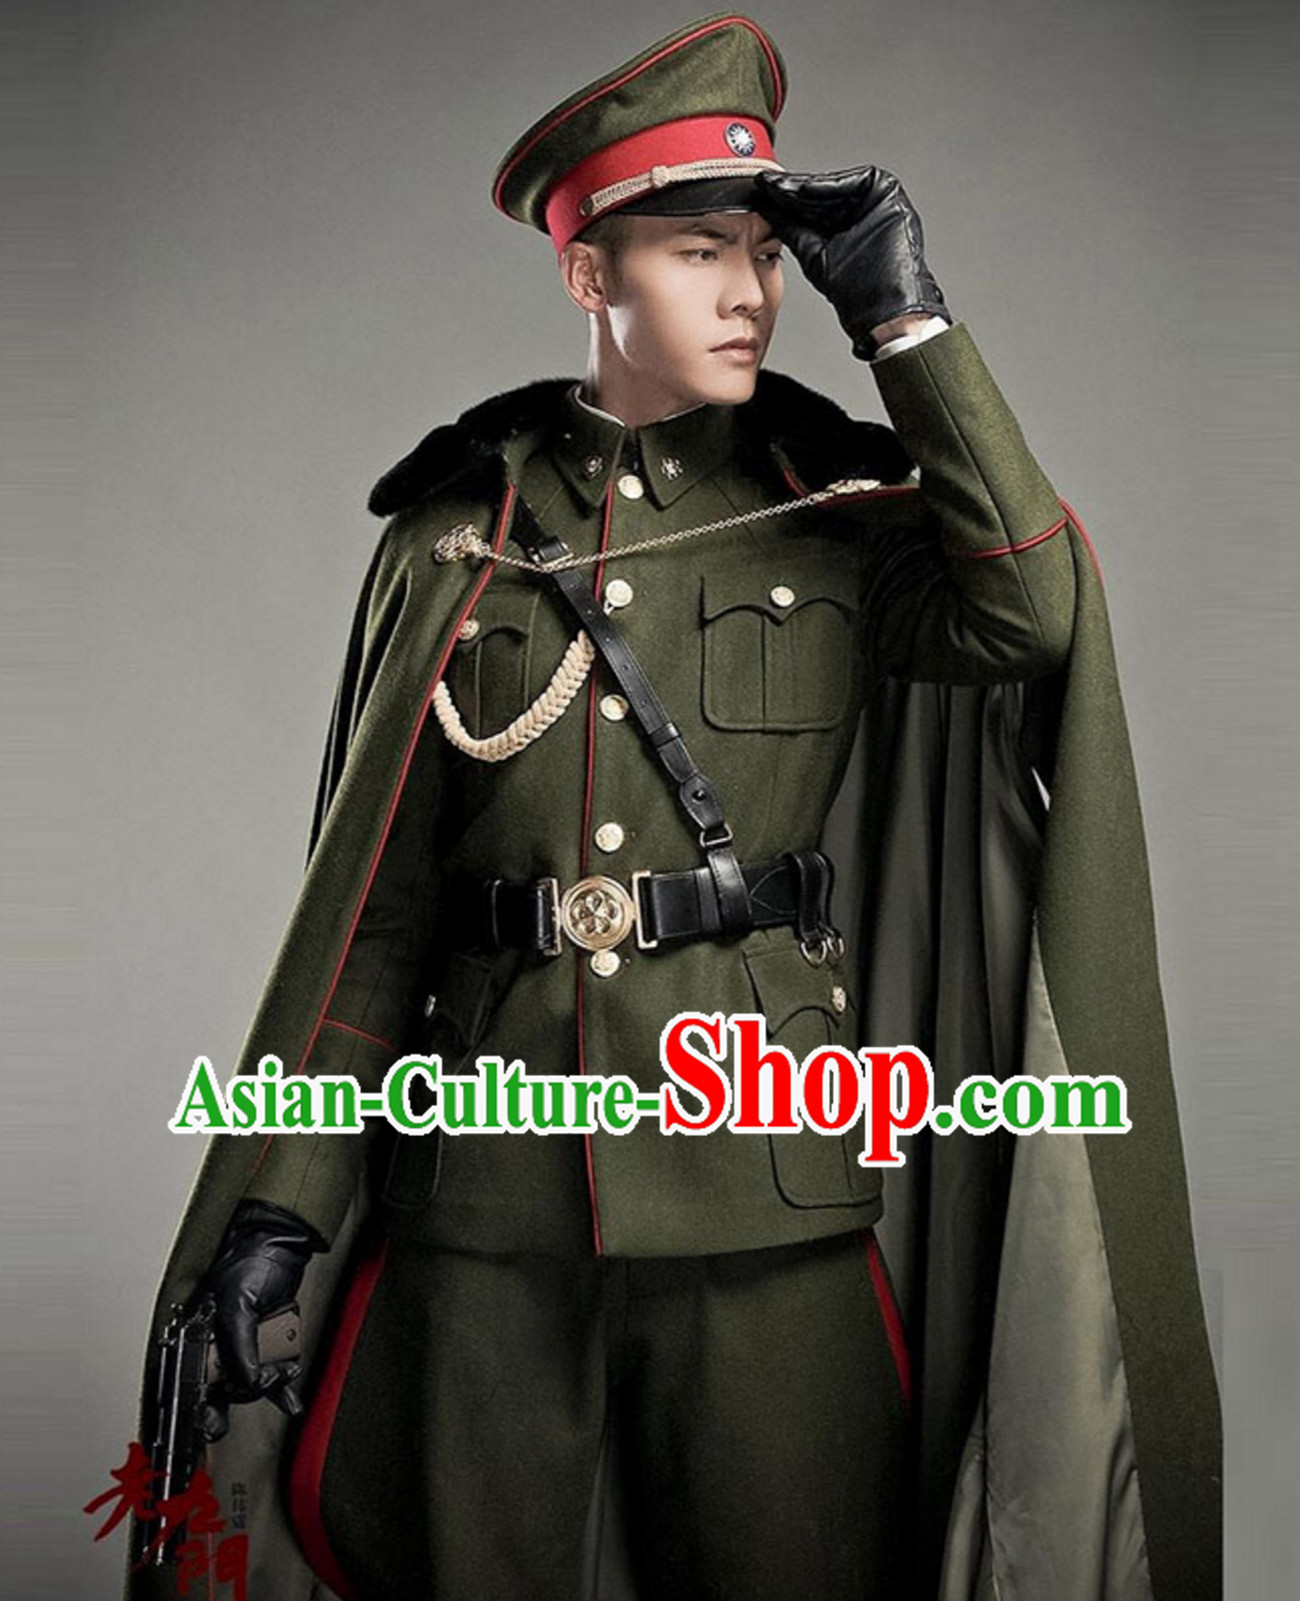 The Mystic Nine Tutorabc Fo Ye TV Drama Series Costumes Mantle Hat Complete Set for Men